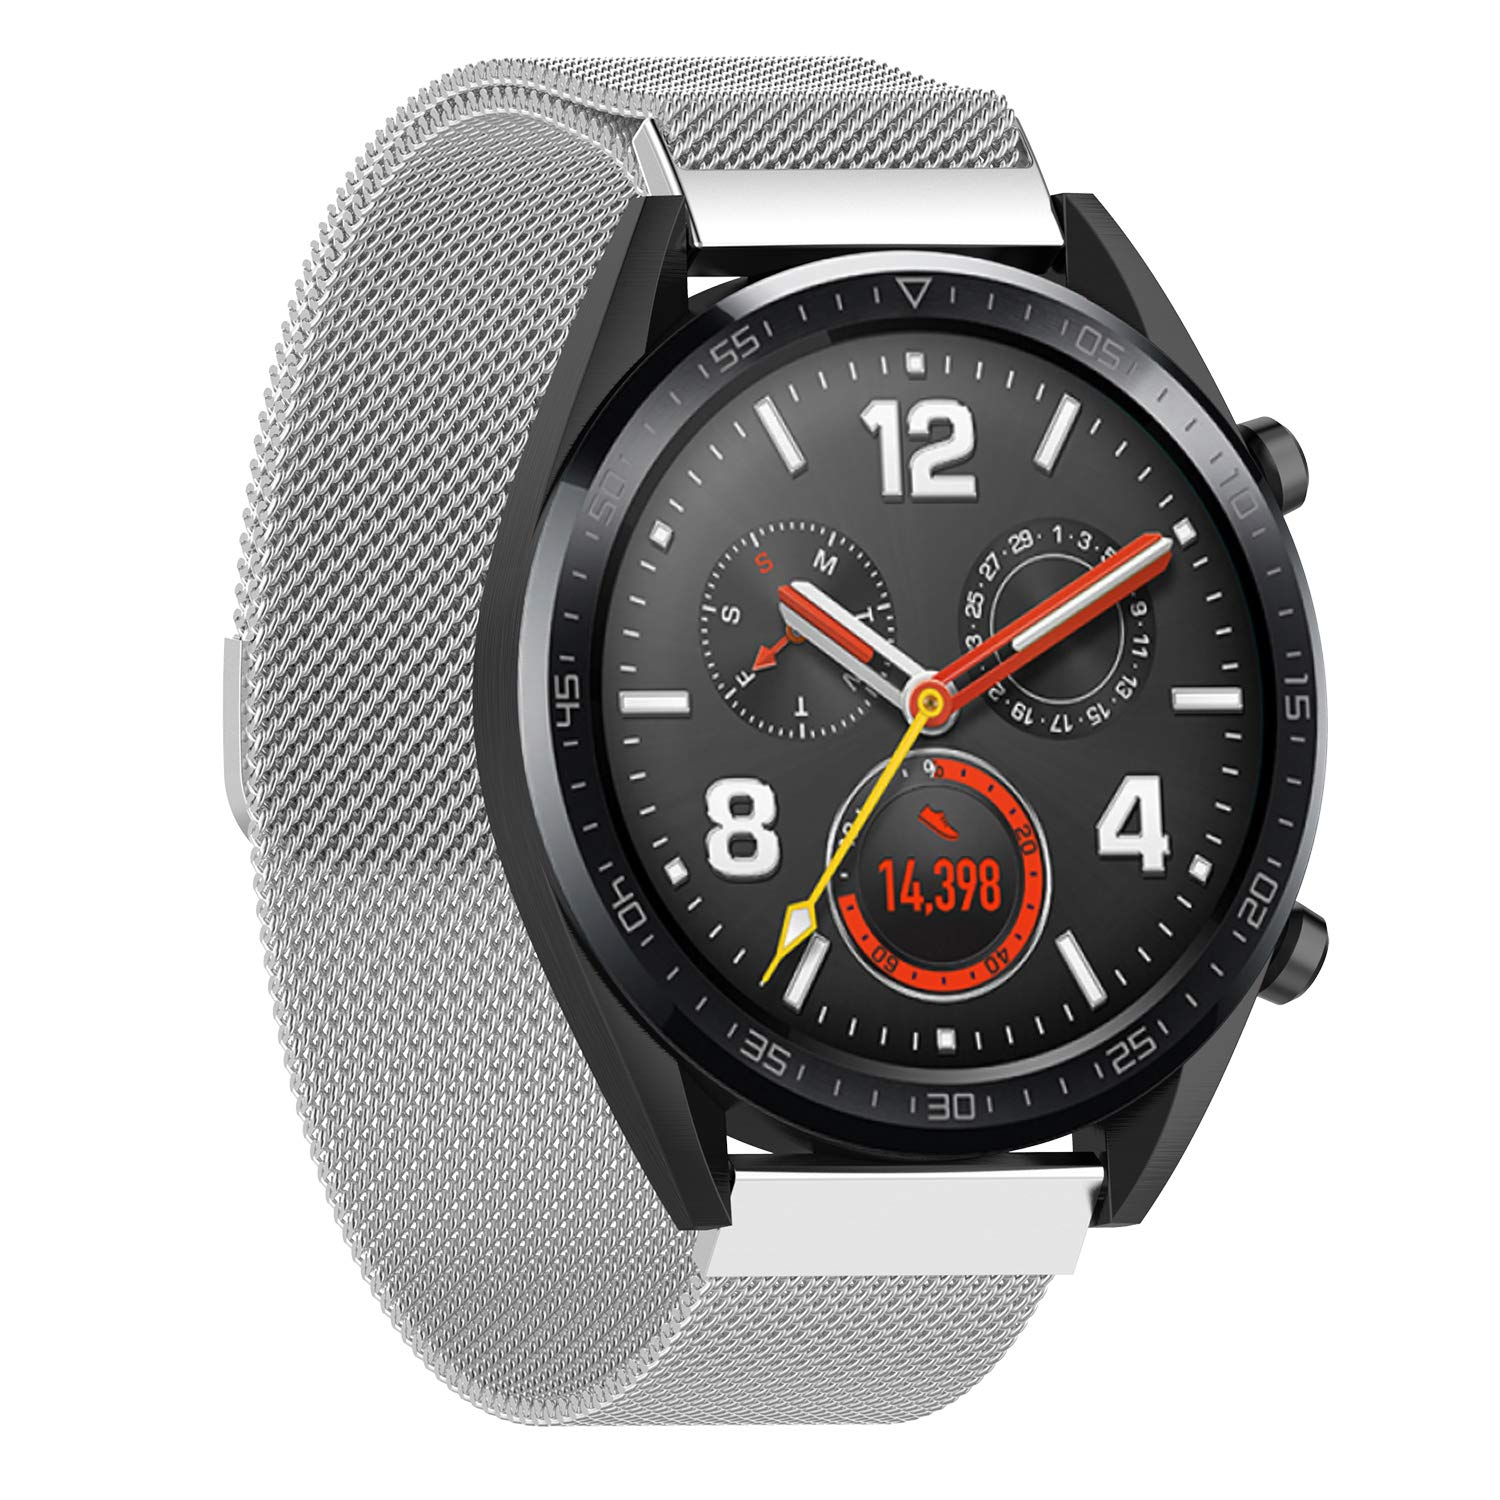 DingTool Compatible with Huawei Watch GT Bands, Stainless Steel Loop Replacement Band Strap Bracelet Accessories for Watch GT/Magic/TicWatch Pro